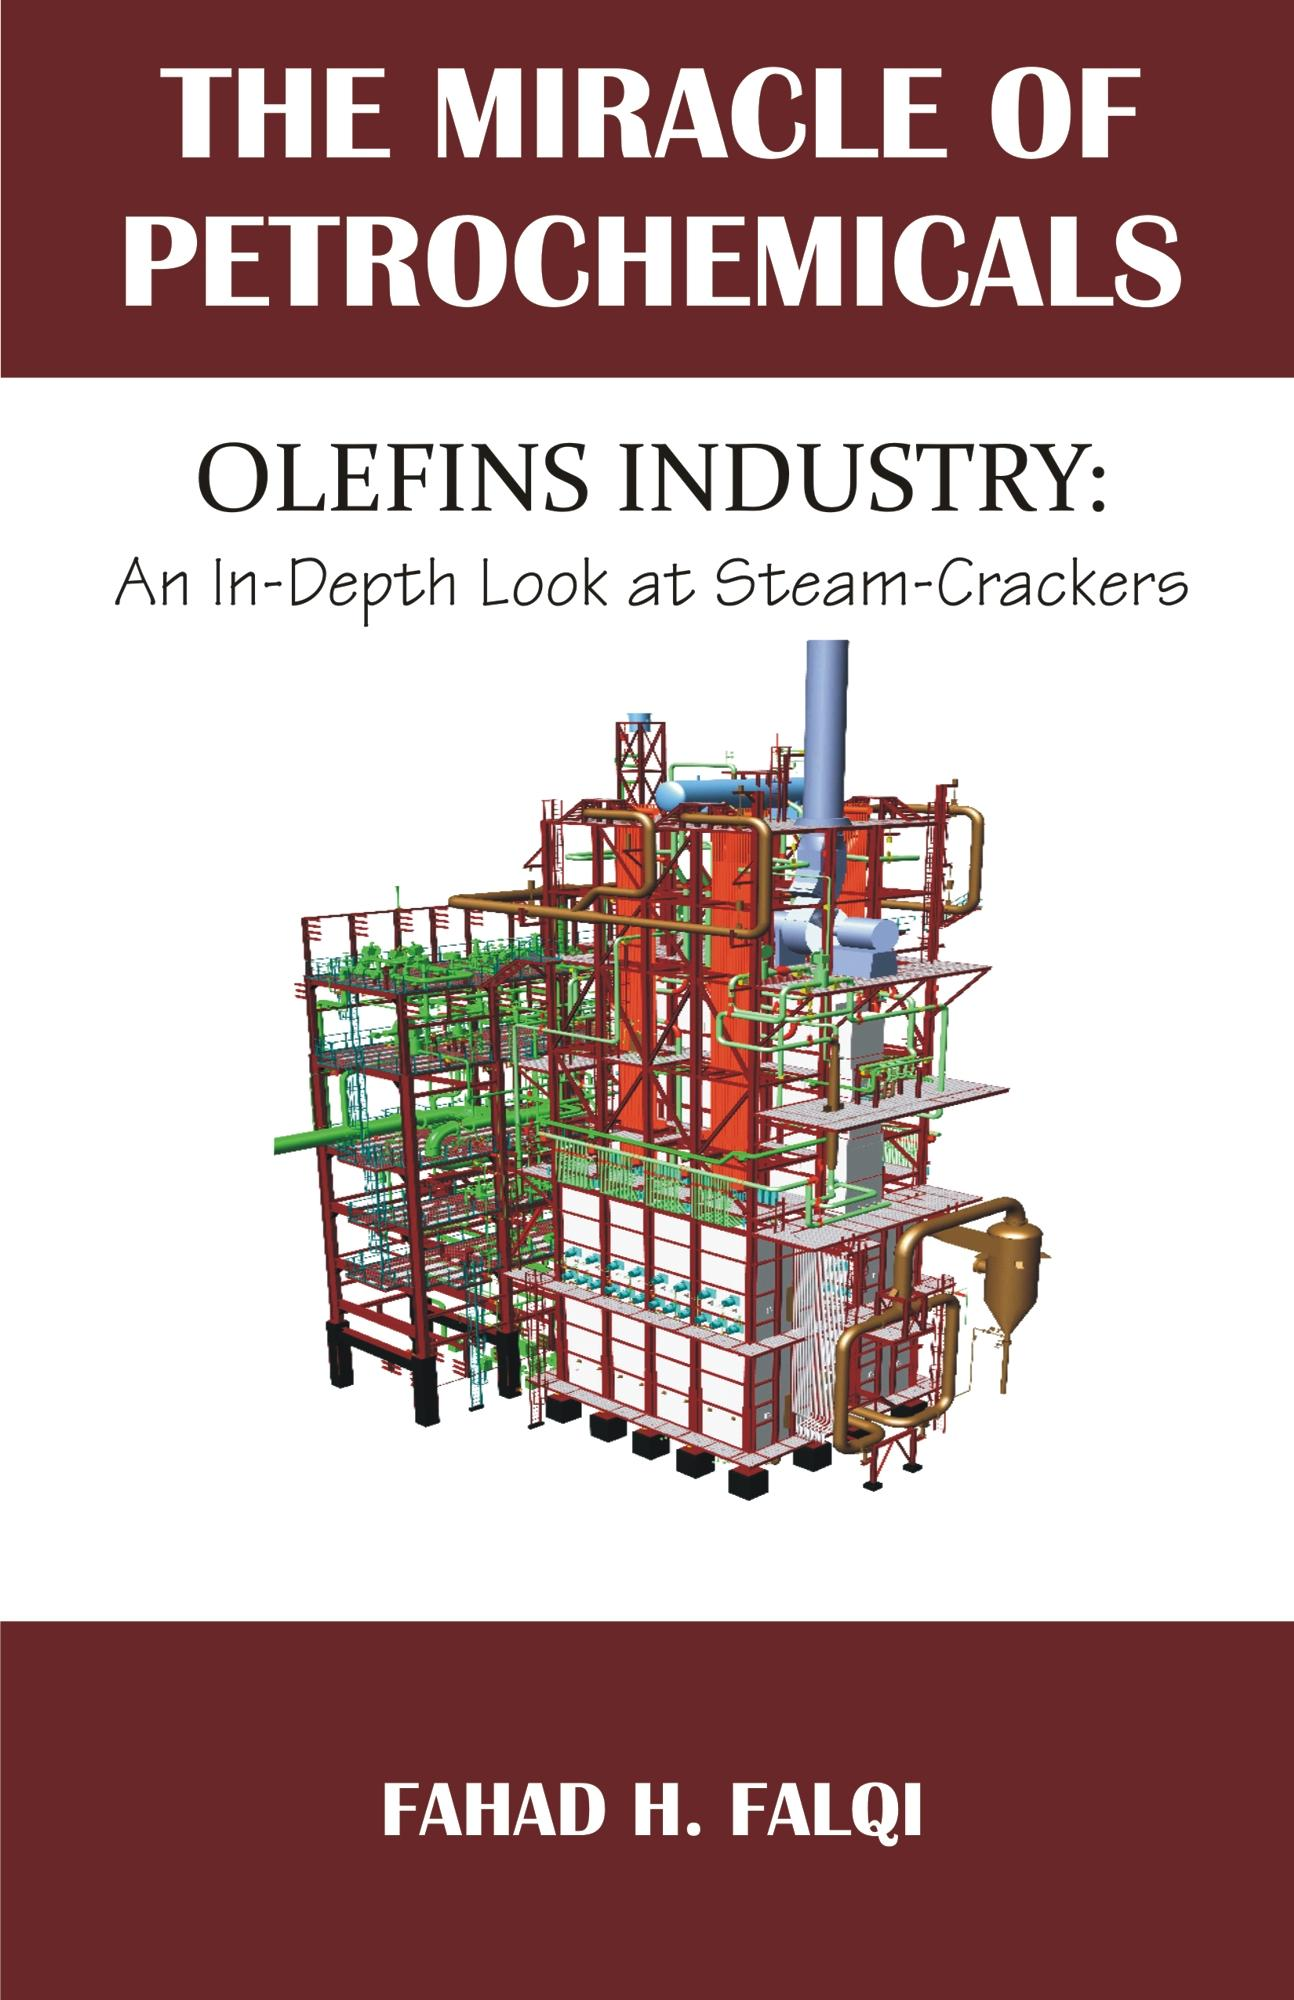 Miracle of Petrochemicals: Olefins Industry: An In-Depth Look at Steam-Crackers EB9781599429144